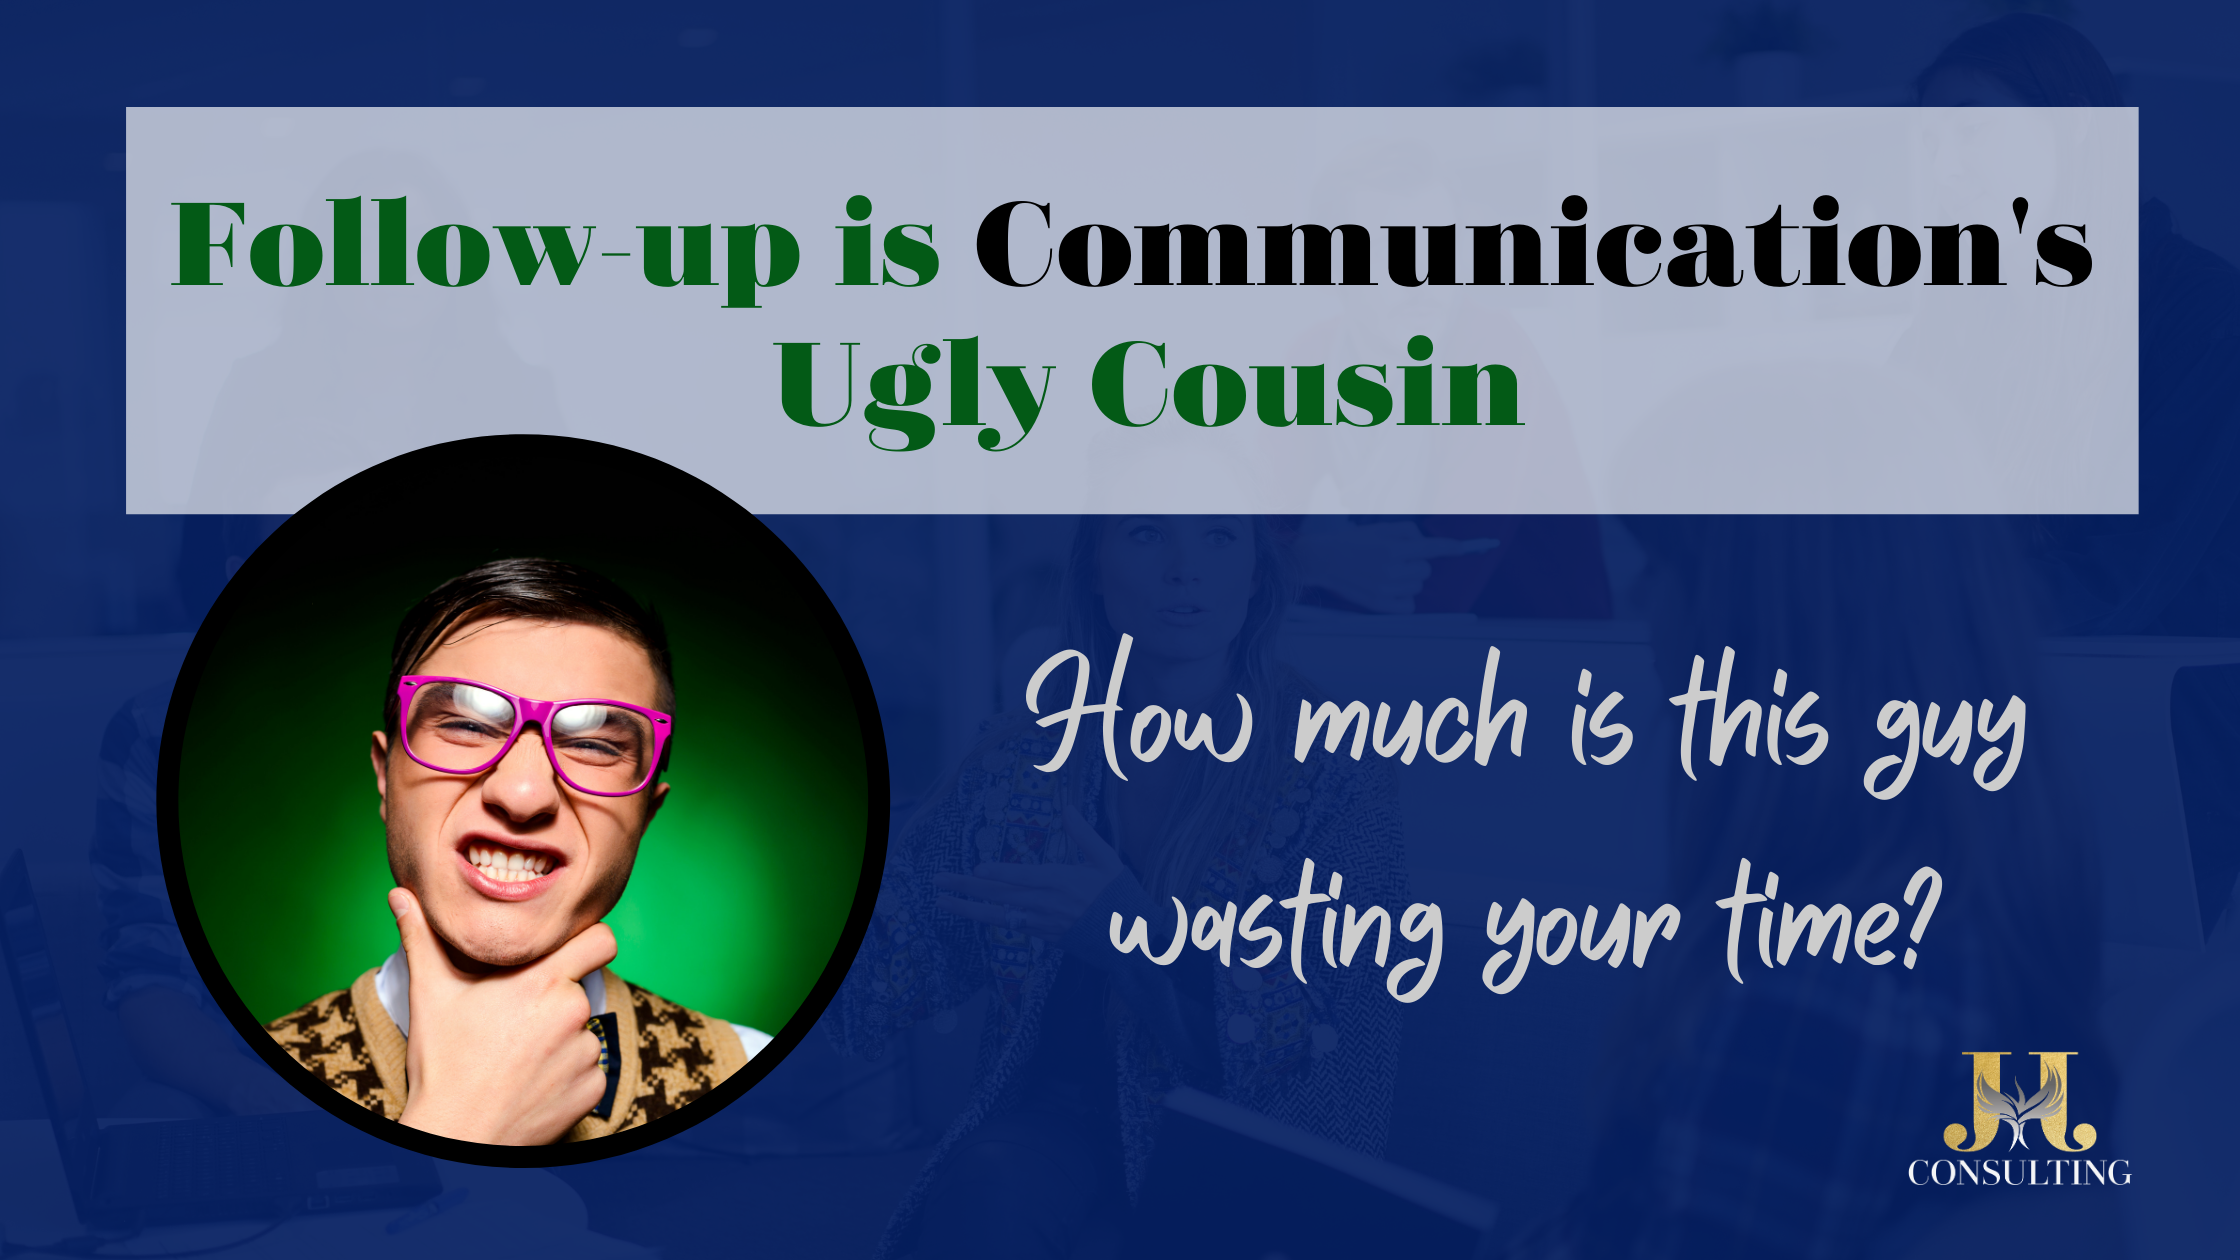 Follow-up is Communication's Ugly Cousin